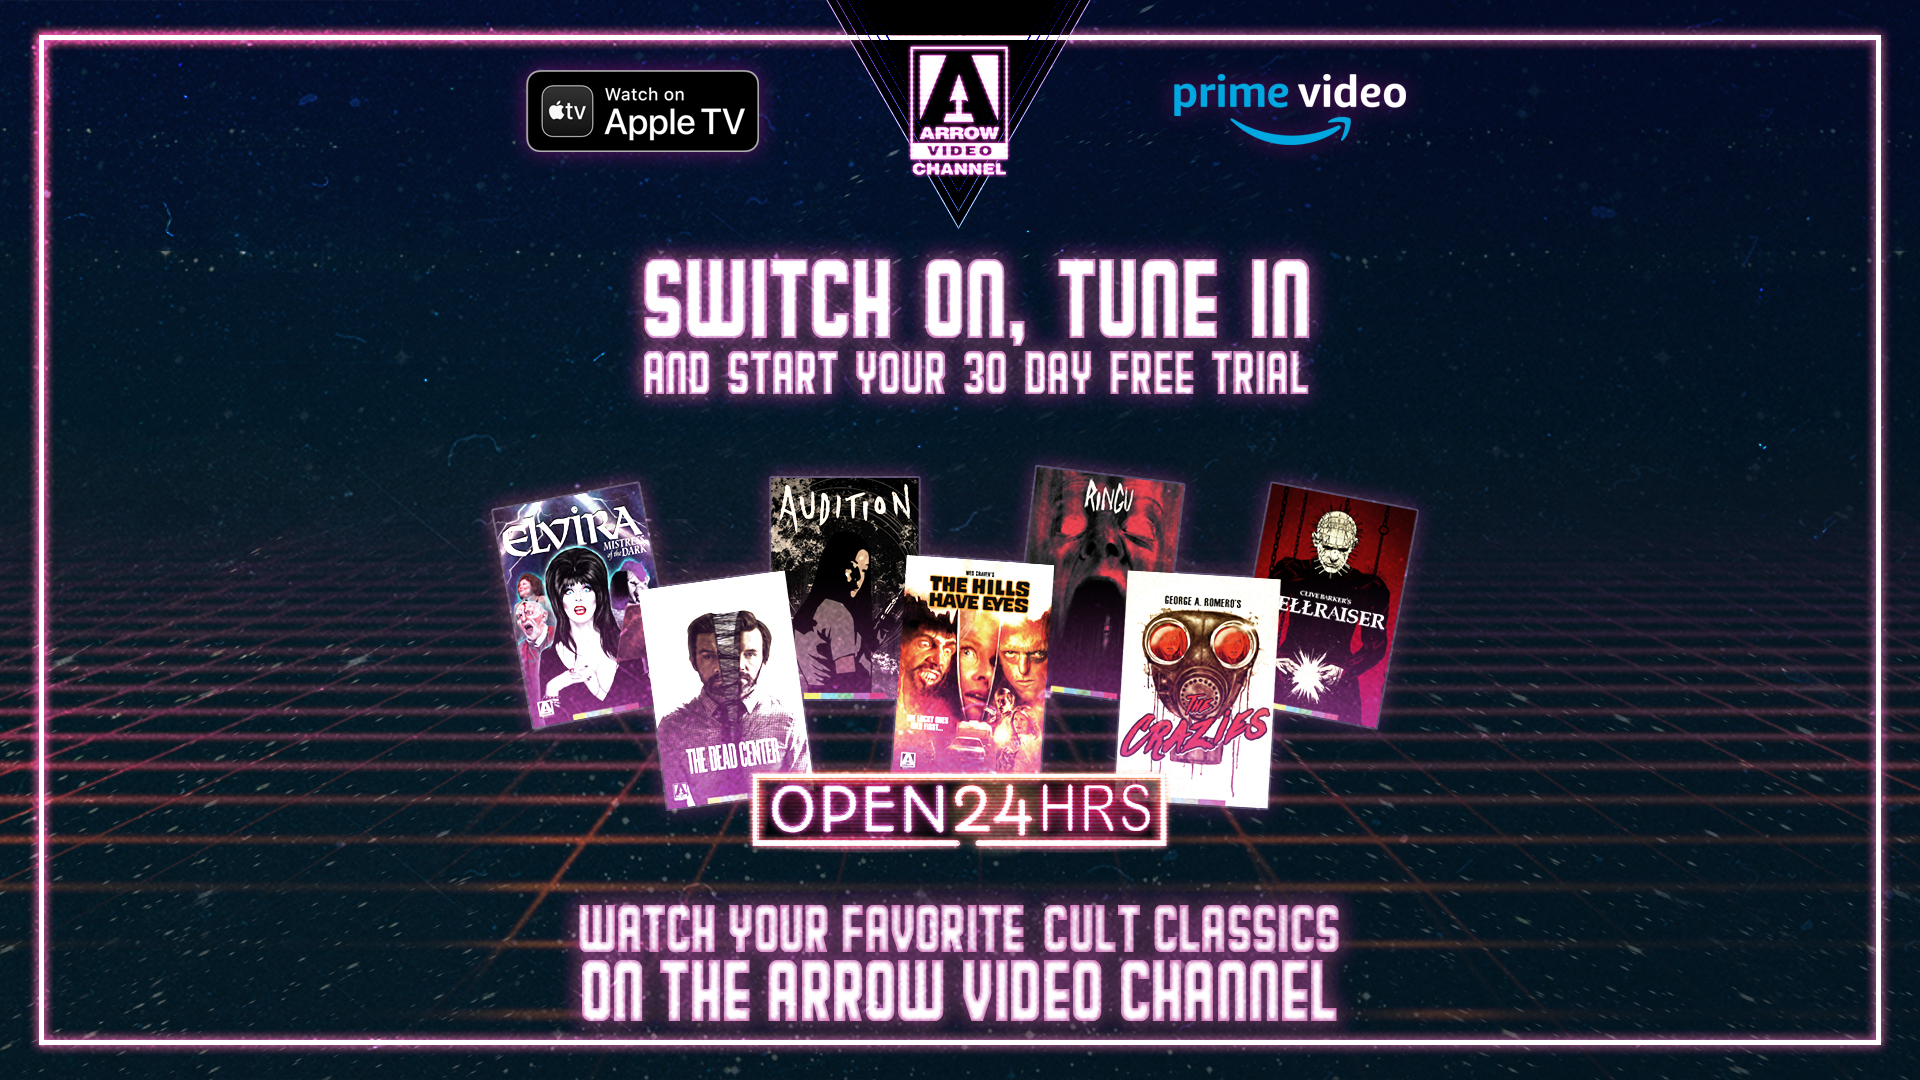 ARROW VIDEO CHANNEL - NOW FREE FOR 30 DAYS!